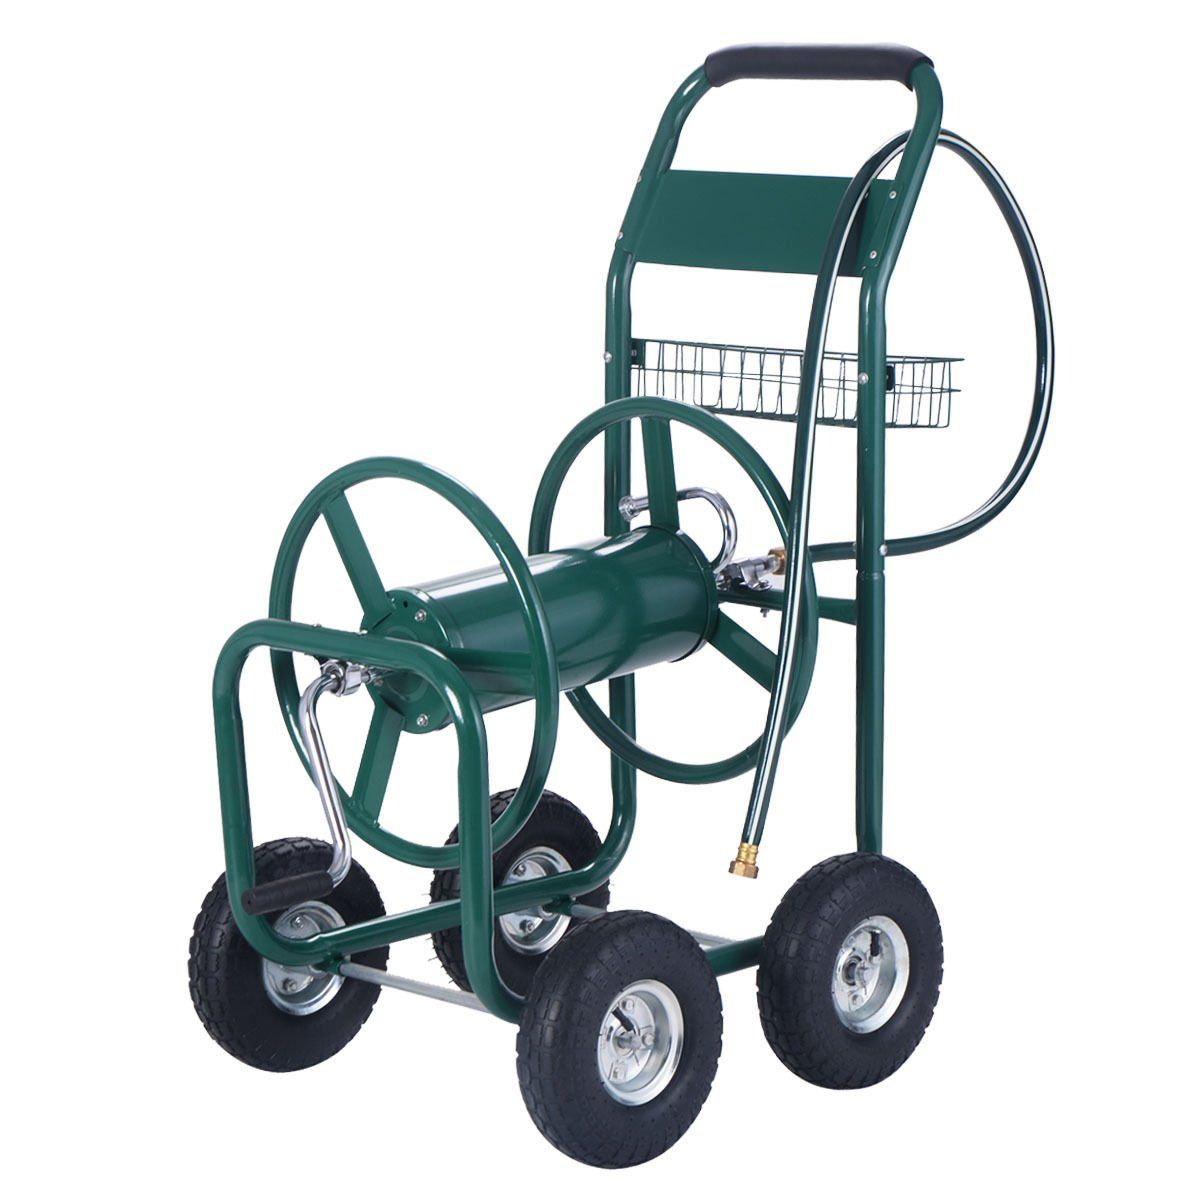 Wakrays Garden Water Hose Reel Cart 300FT Outdoor Heavy Duty Yard Planting W/Basket New by Wakrays (Image #1)